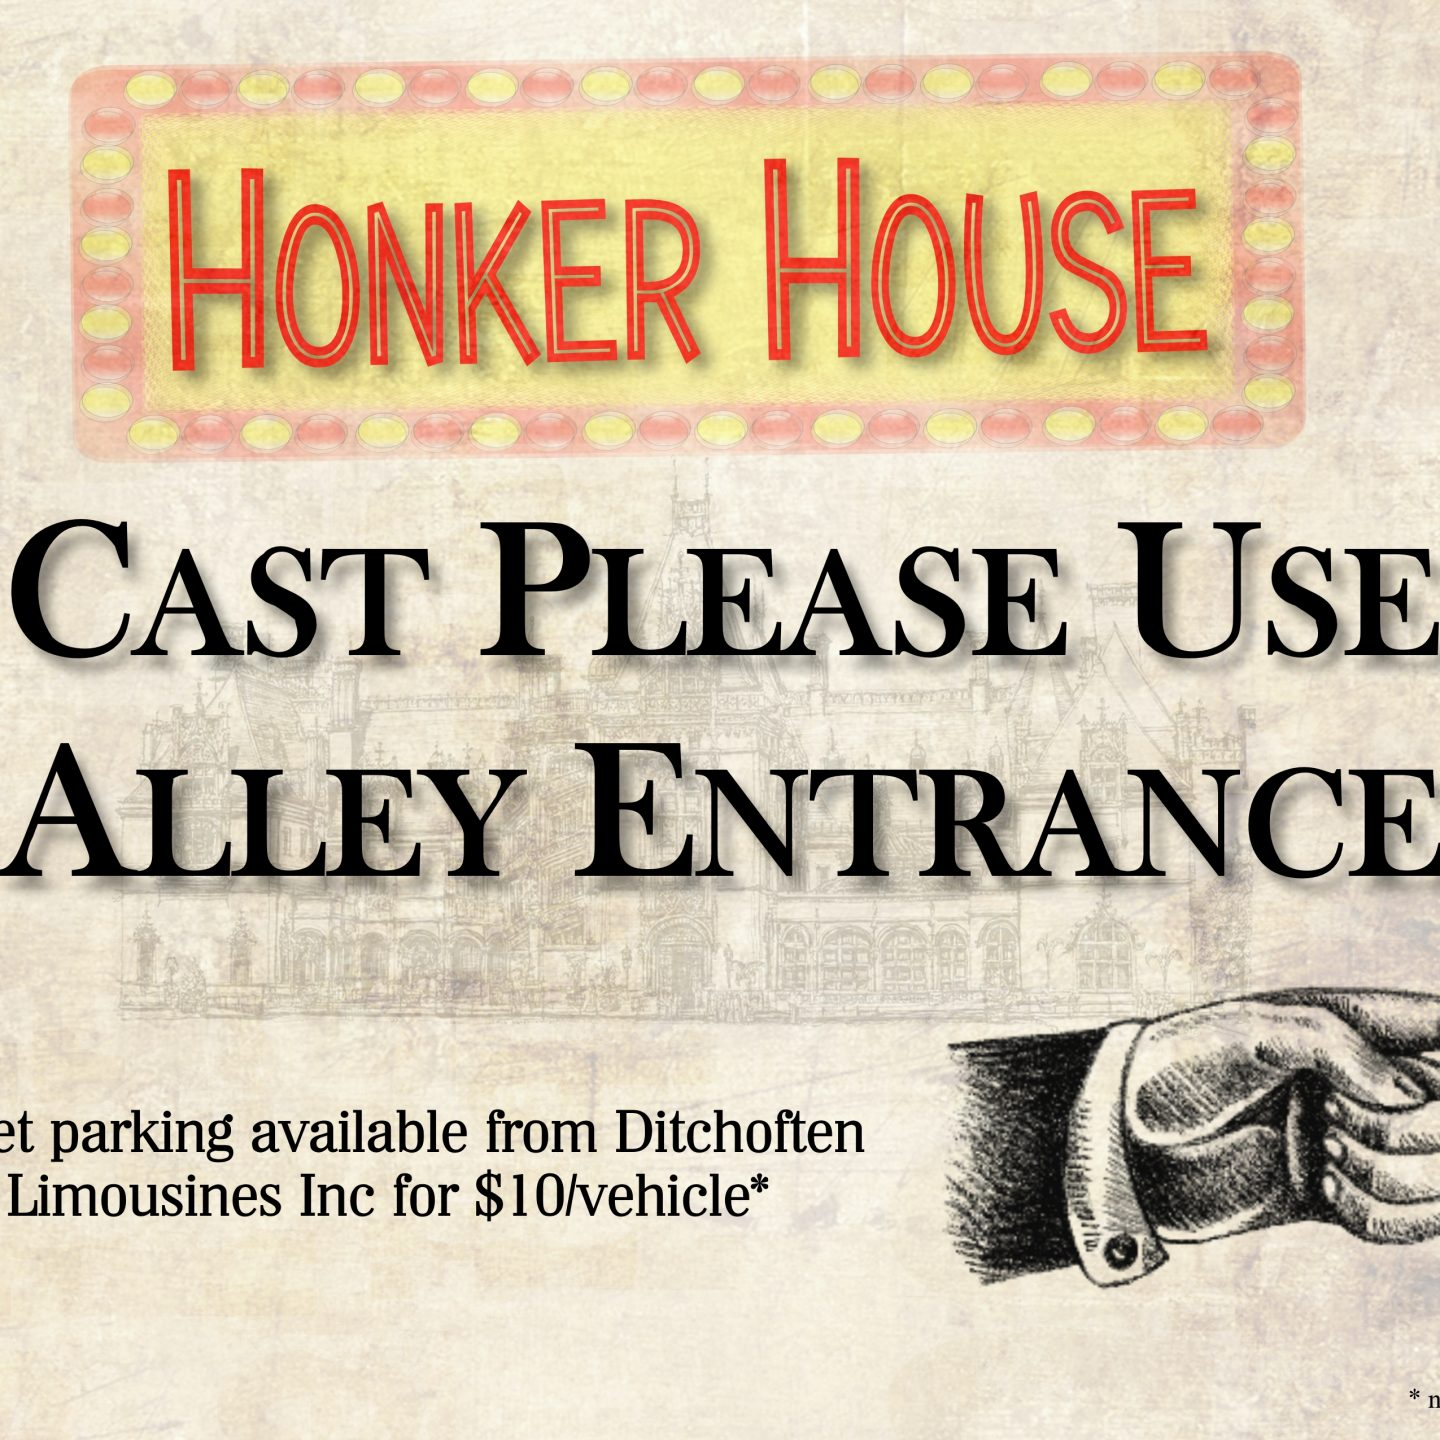 Rehearsals are under way for the Honker House Family Reunion!